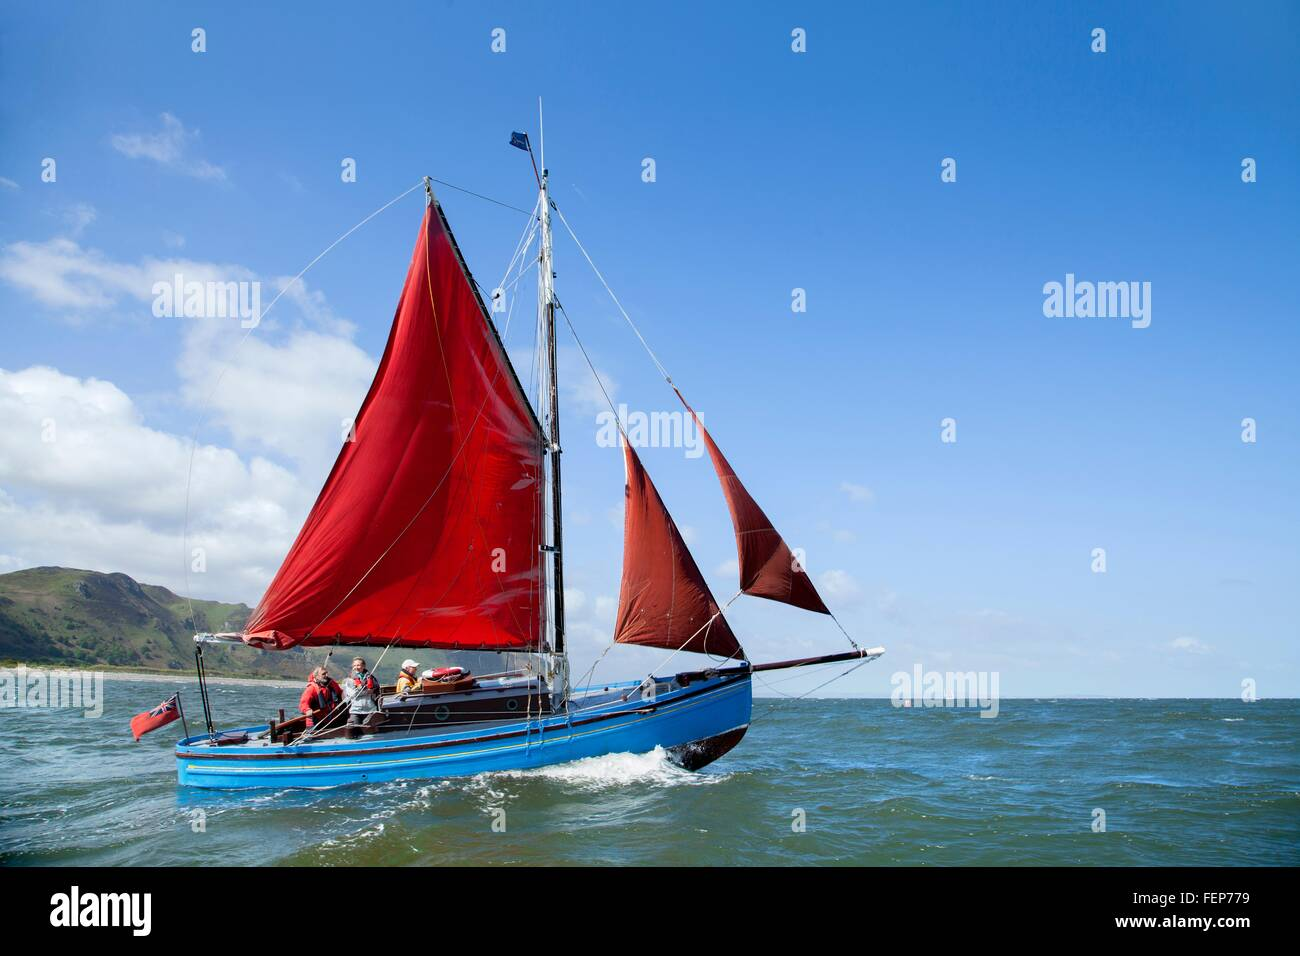 Small group of adults on sailing boat - Stock Image